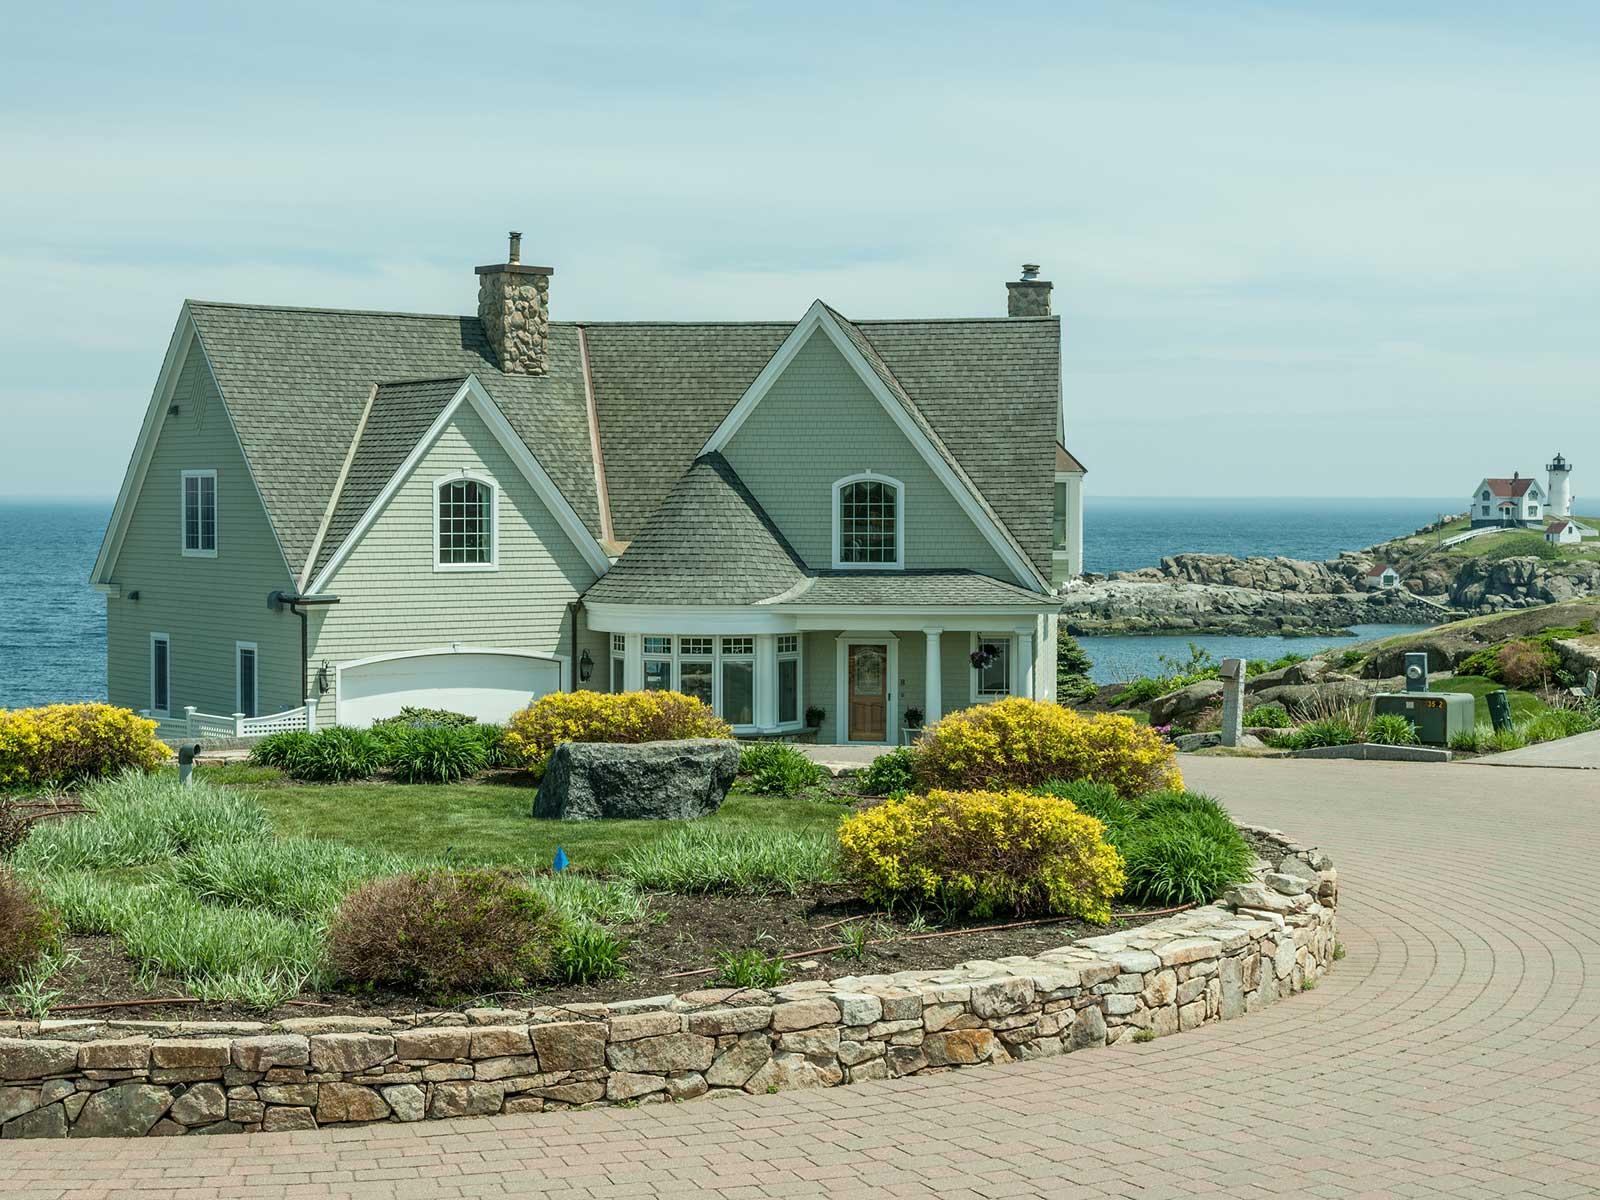 Single Family Home for Sale at Bold Ocean and Nubble Lighthouse Views 8 Lighthouse Watch York, Maine 03909 United States